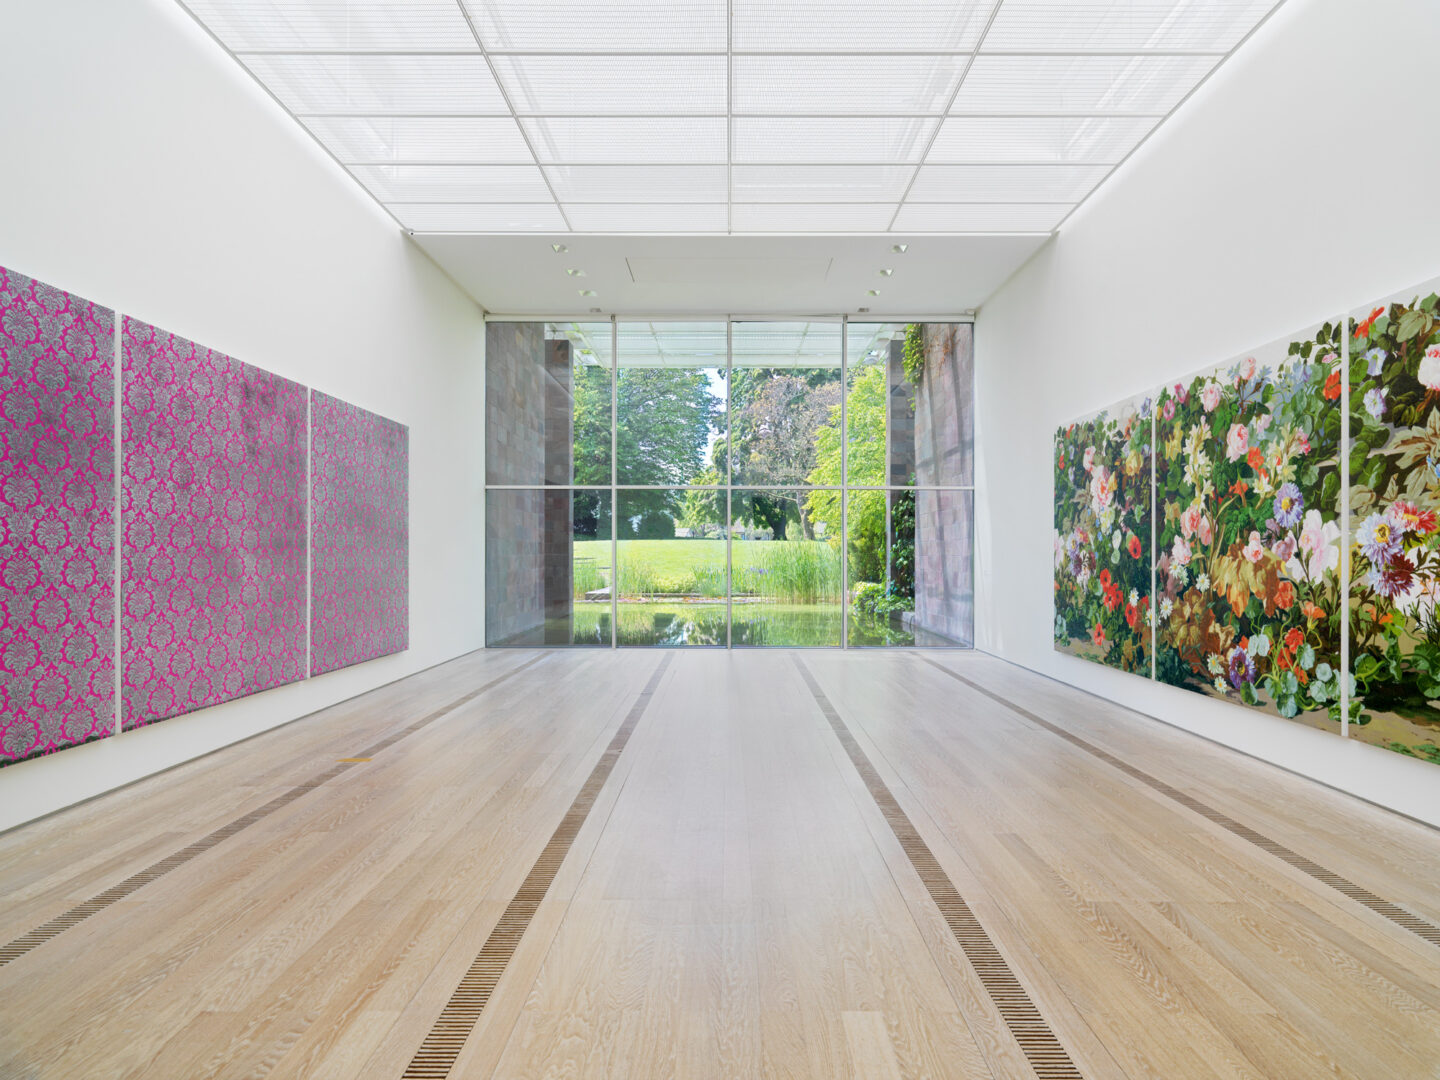 Exhibition View Rudolf Stingel Soloshow at Fondation Beyeler, Riehen, 2019 / Photo: Stefan Altenburger / © Rudolf Stingel / Courtesy: the artist and Fondation Beyeler